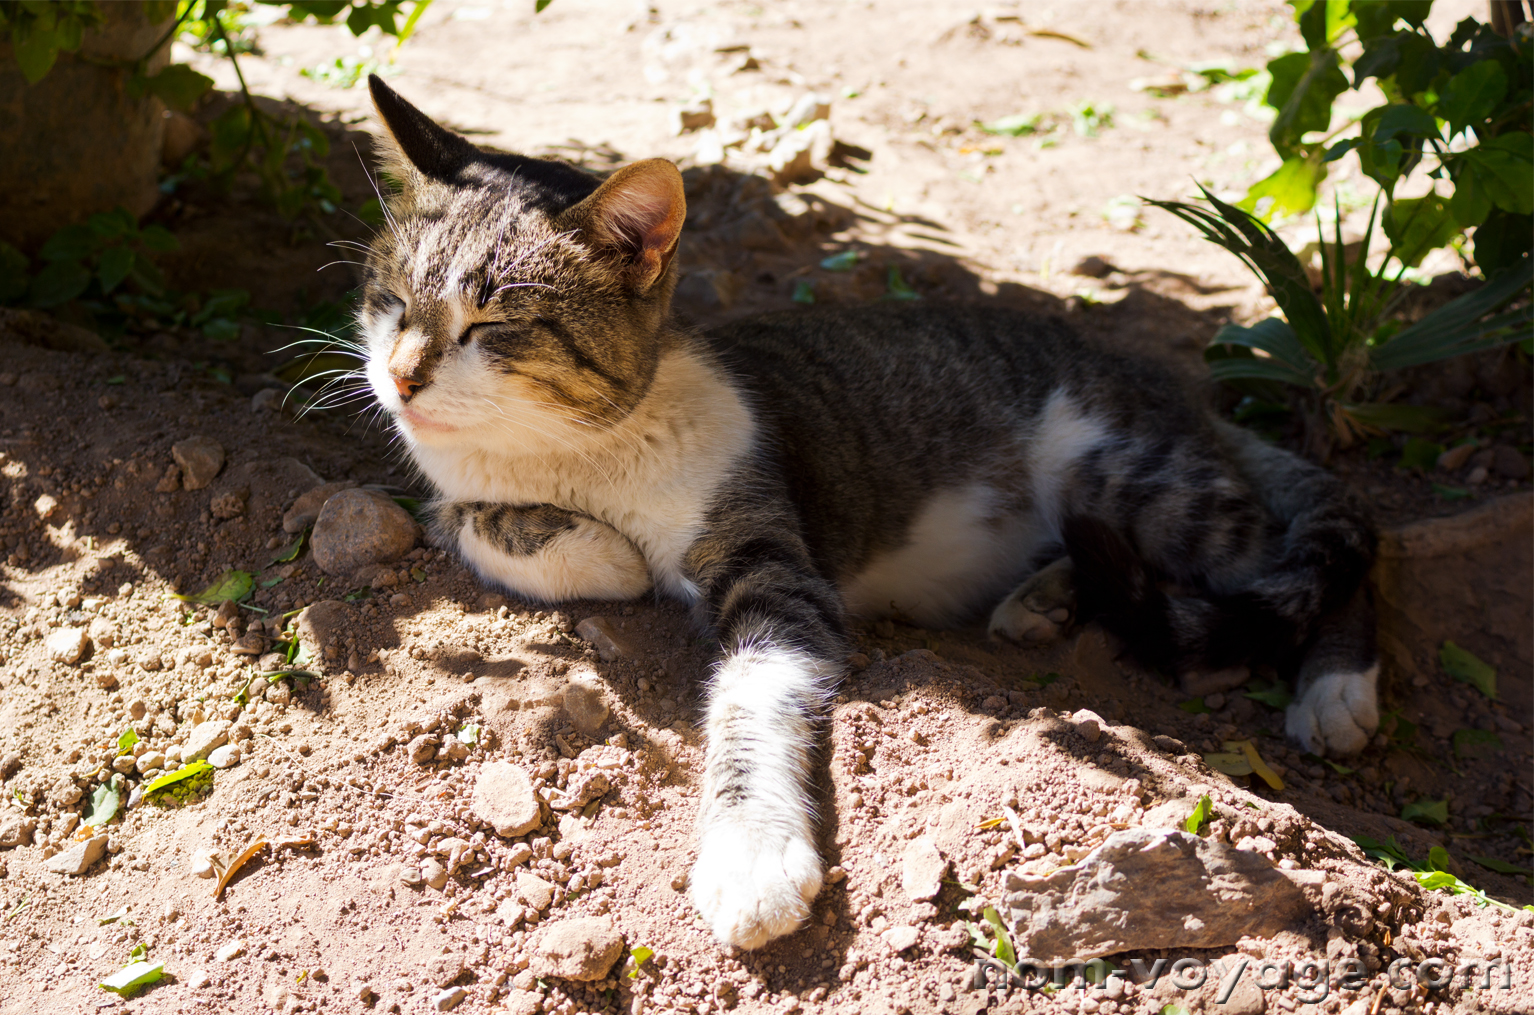 These next few photos are of the cats living on the grounds of the Palais de la Bahia in Marrakech. They were extremely friendly and hungry.